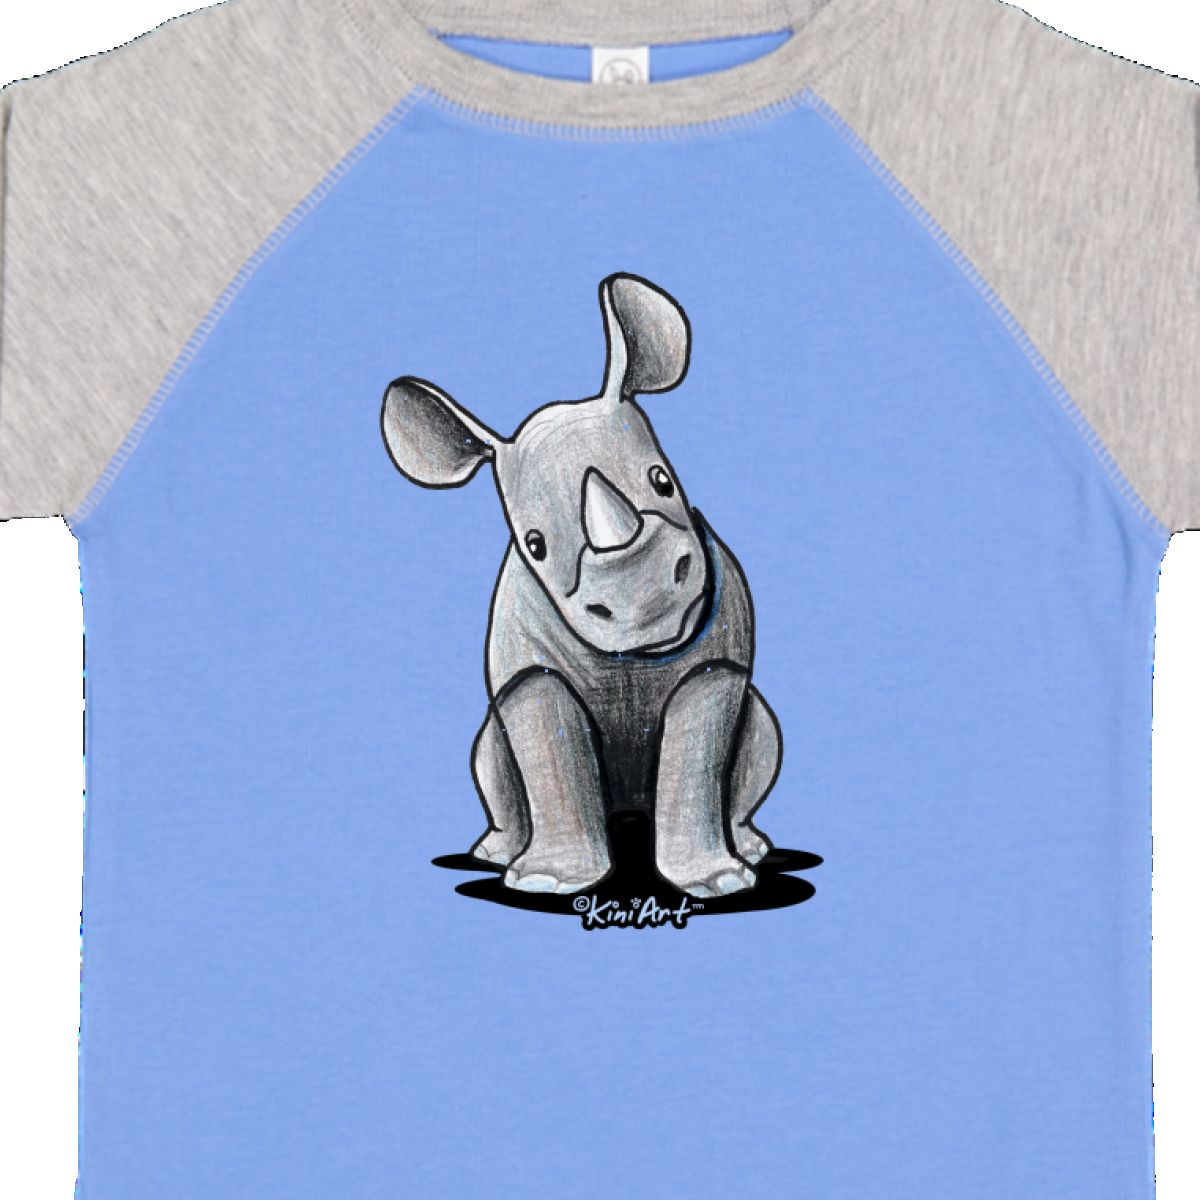 Inktastic-Curious-Rhinos-Toddler-T-Shirt-KiniArt-Rhino-Rhinoceros-Art-Cartoon thumbnail 8